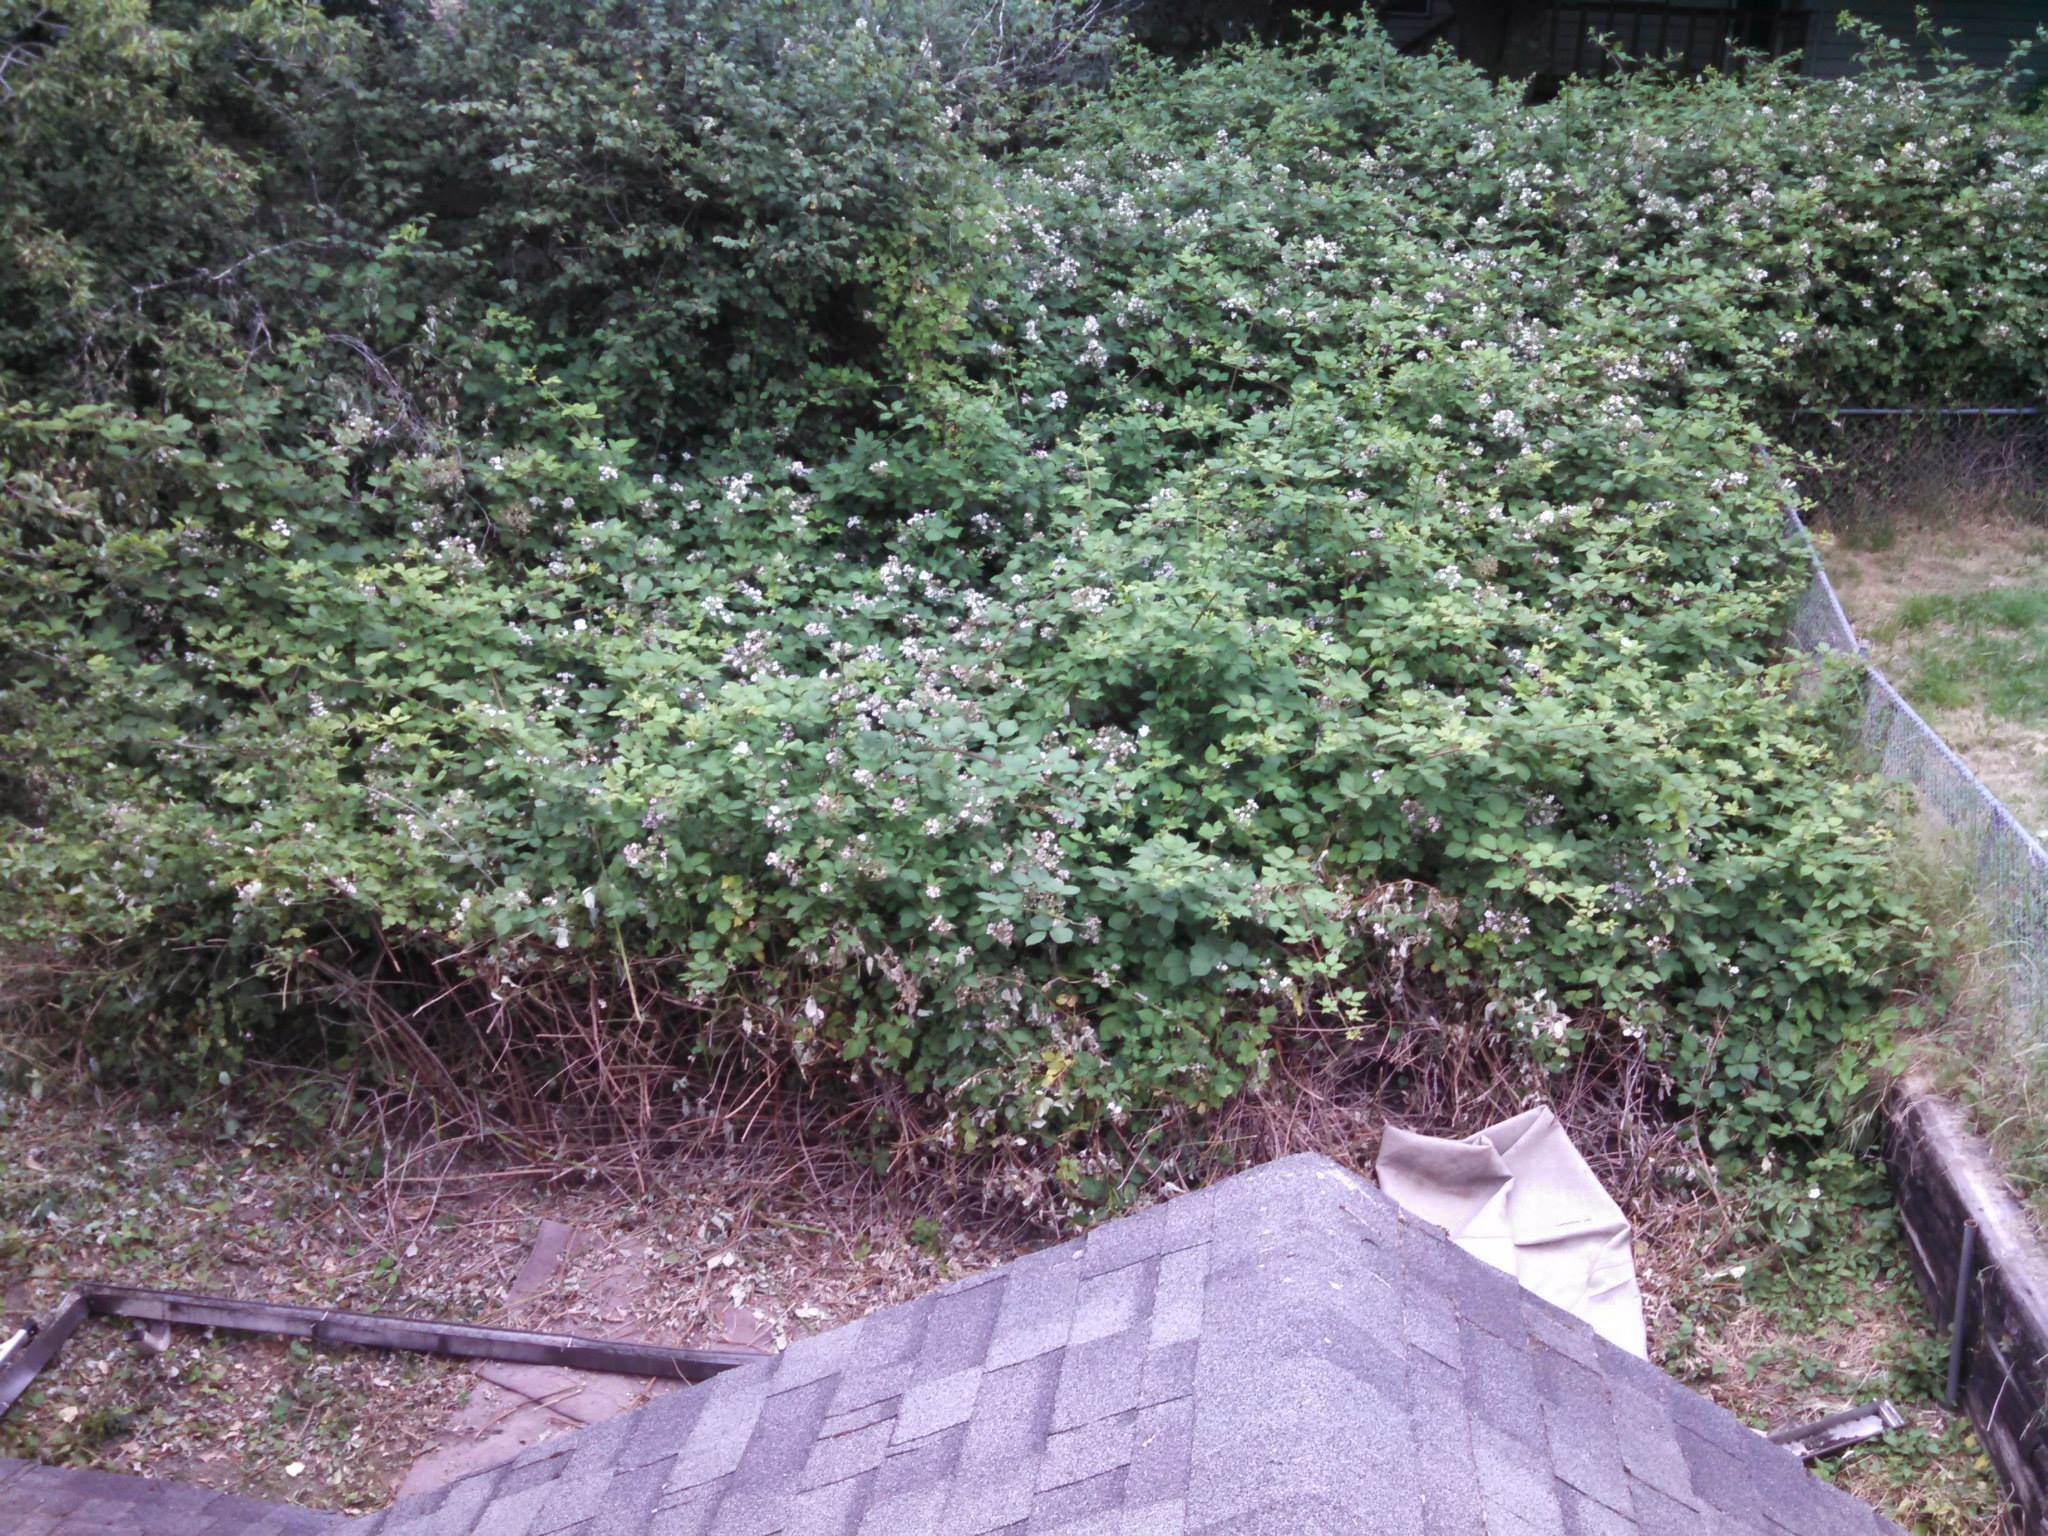 When I bought my house the back yard was overrun with blackberries. Cutting through them with a machete was definitely interesting.